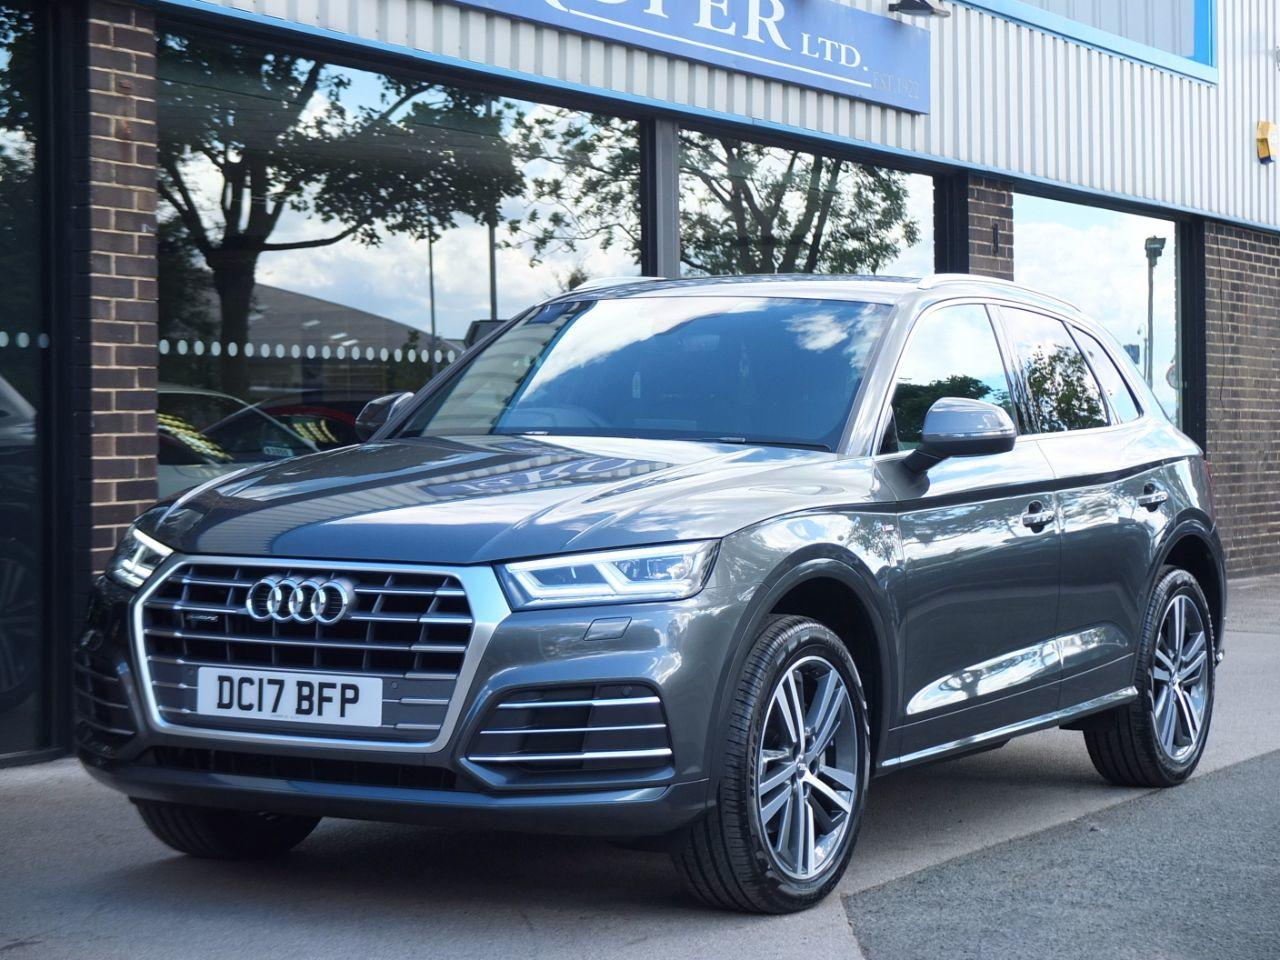 Audi Q5 2.0 TDI quattro S Line S tronic 190ps Estate Diesel Daytona Grey MetallicAudi Q5 2.0 TDI quattro S Line S tronic 190ps Estate Diesel Daytona Grey Metallic at fa Roper Ltd Bradford